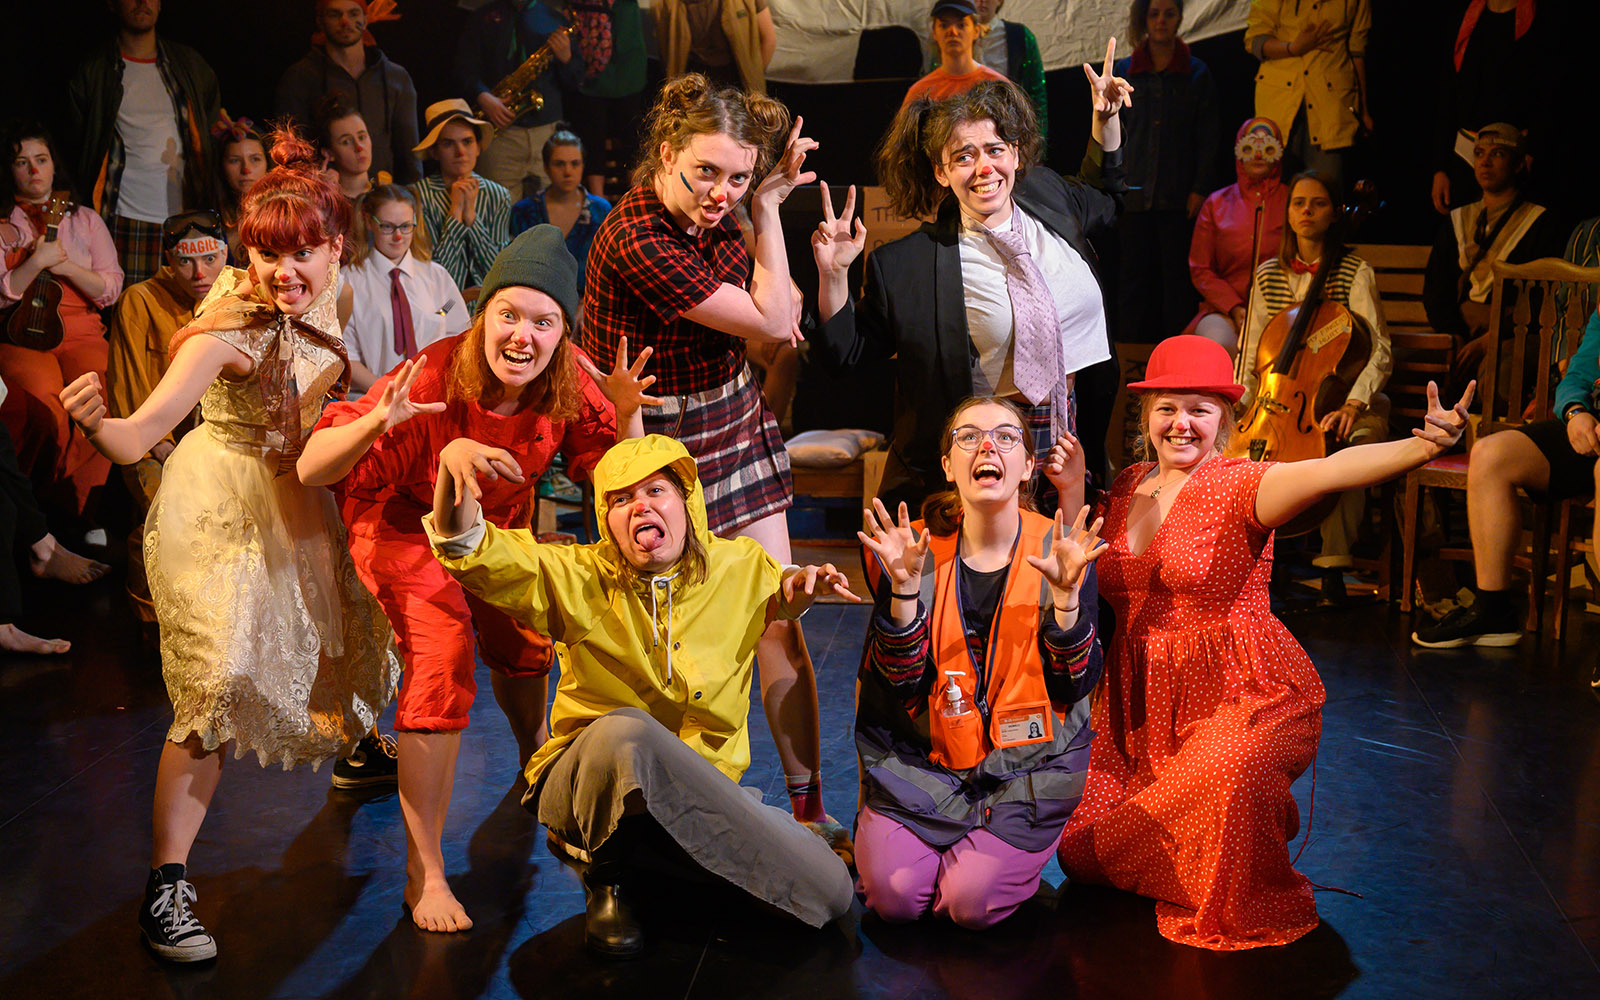 A colourful scene of drama students posing on stage.